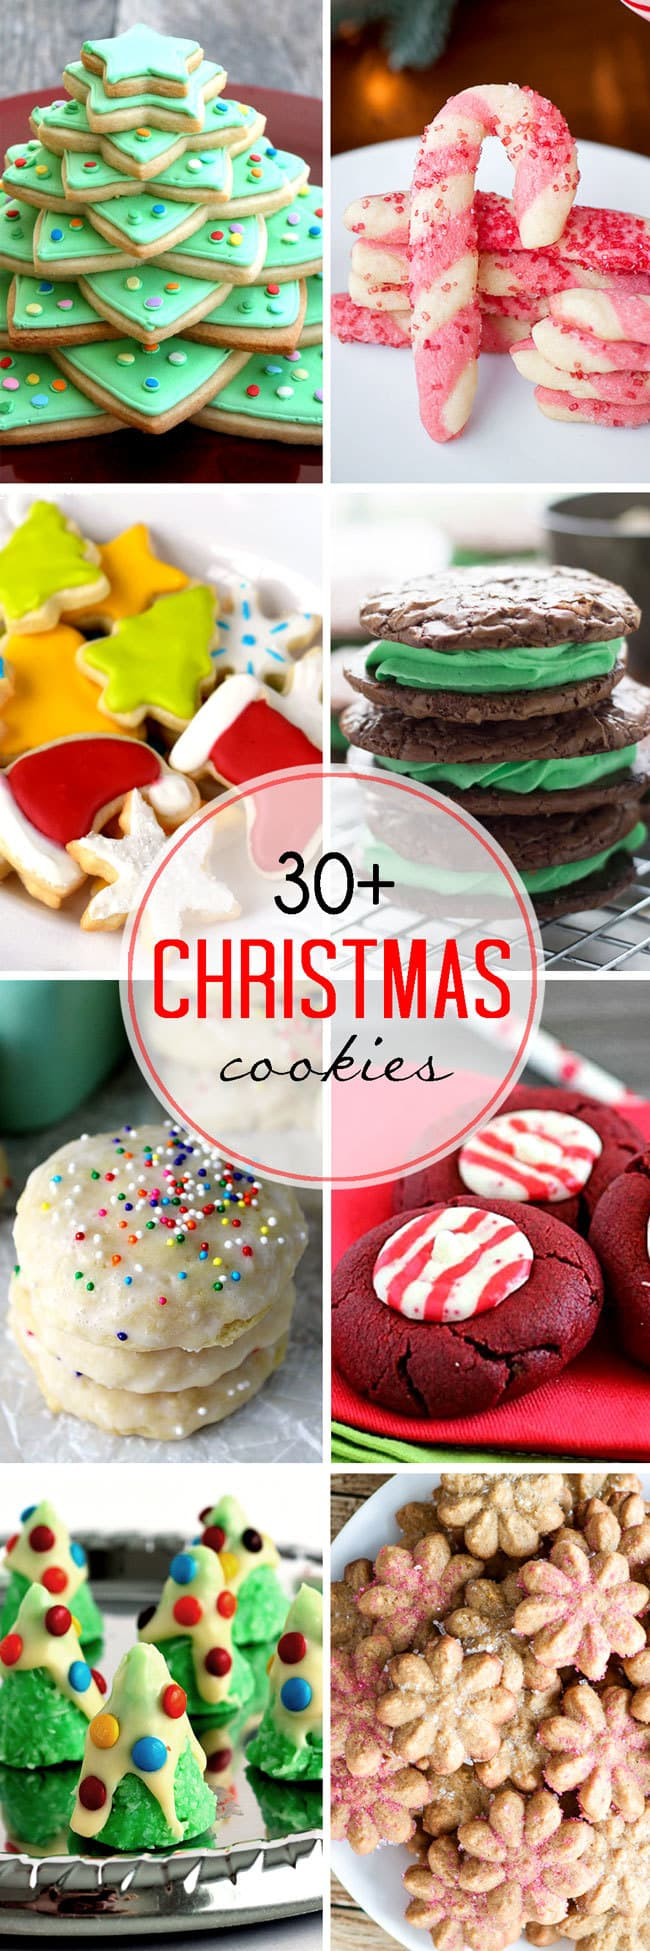 30+ incredible Christmas Cookie Recipes all in one spot! You will definitely find a cookie recipe here that you will love!